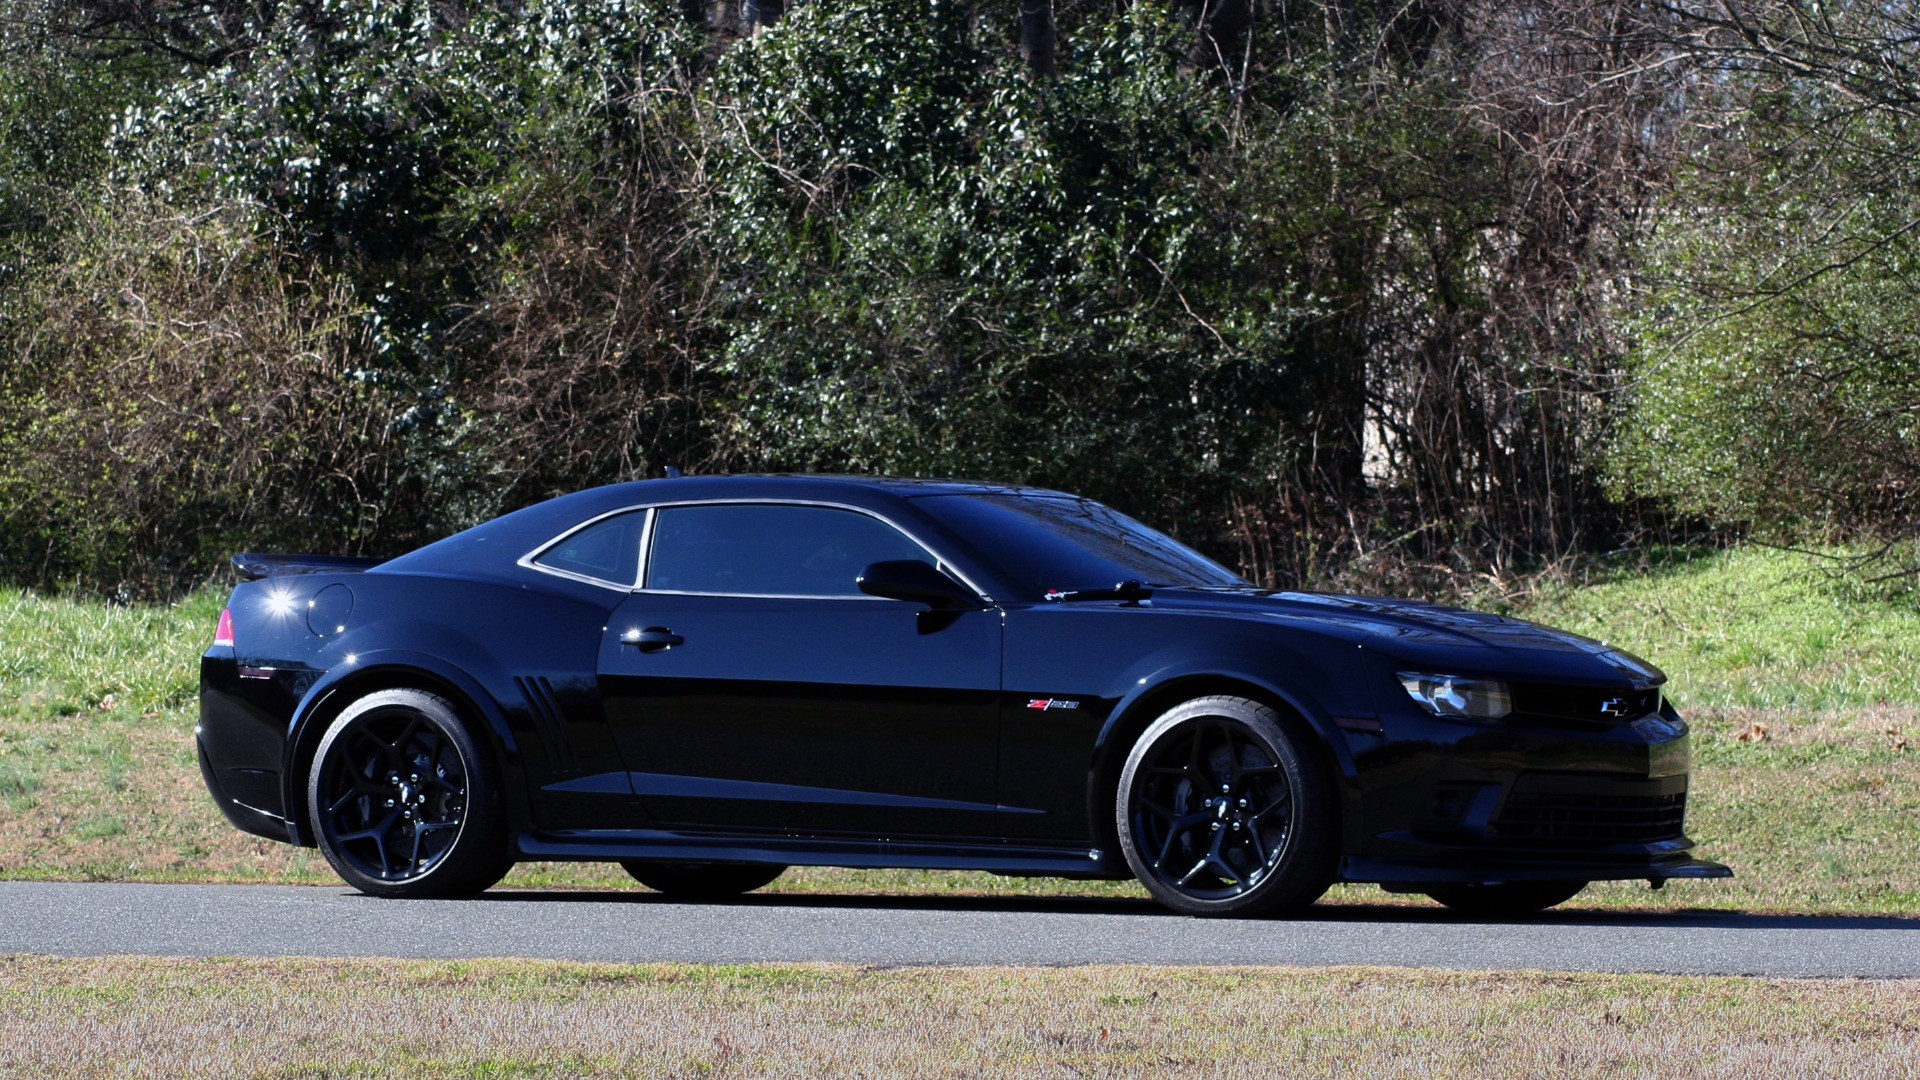 Used 2014 Chevrolet CAMARO Z/28 / 427 7.0L V8 505HP / RADIO / AIR CONDITIONING for sale Sold at Formula Imports in Charlotte NC 28227 14